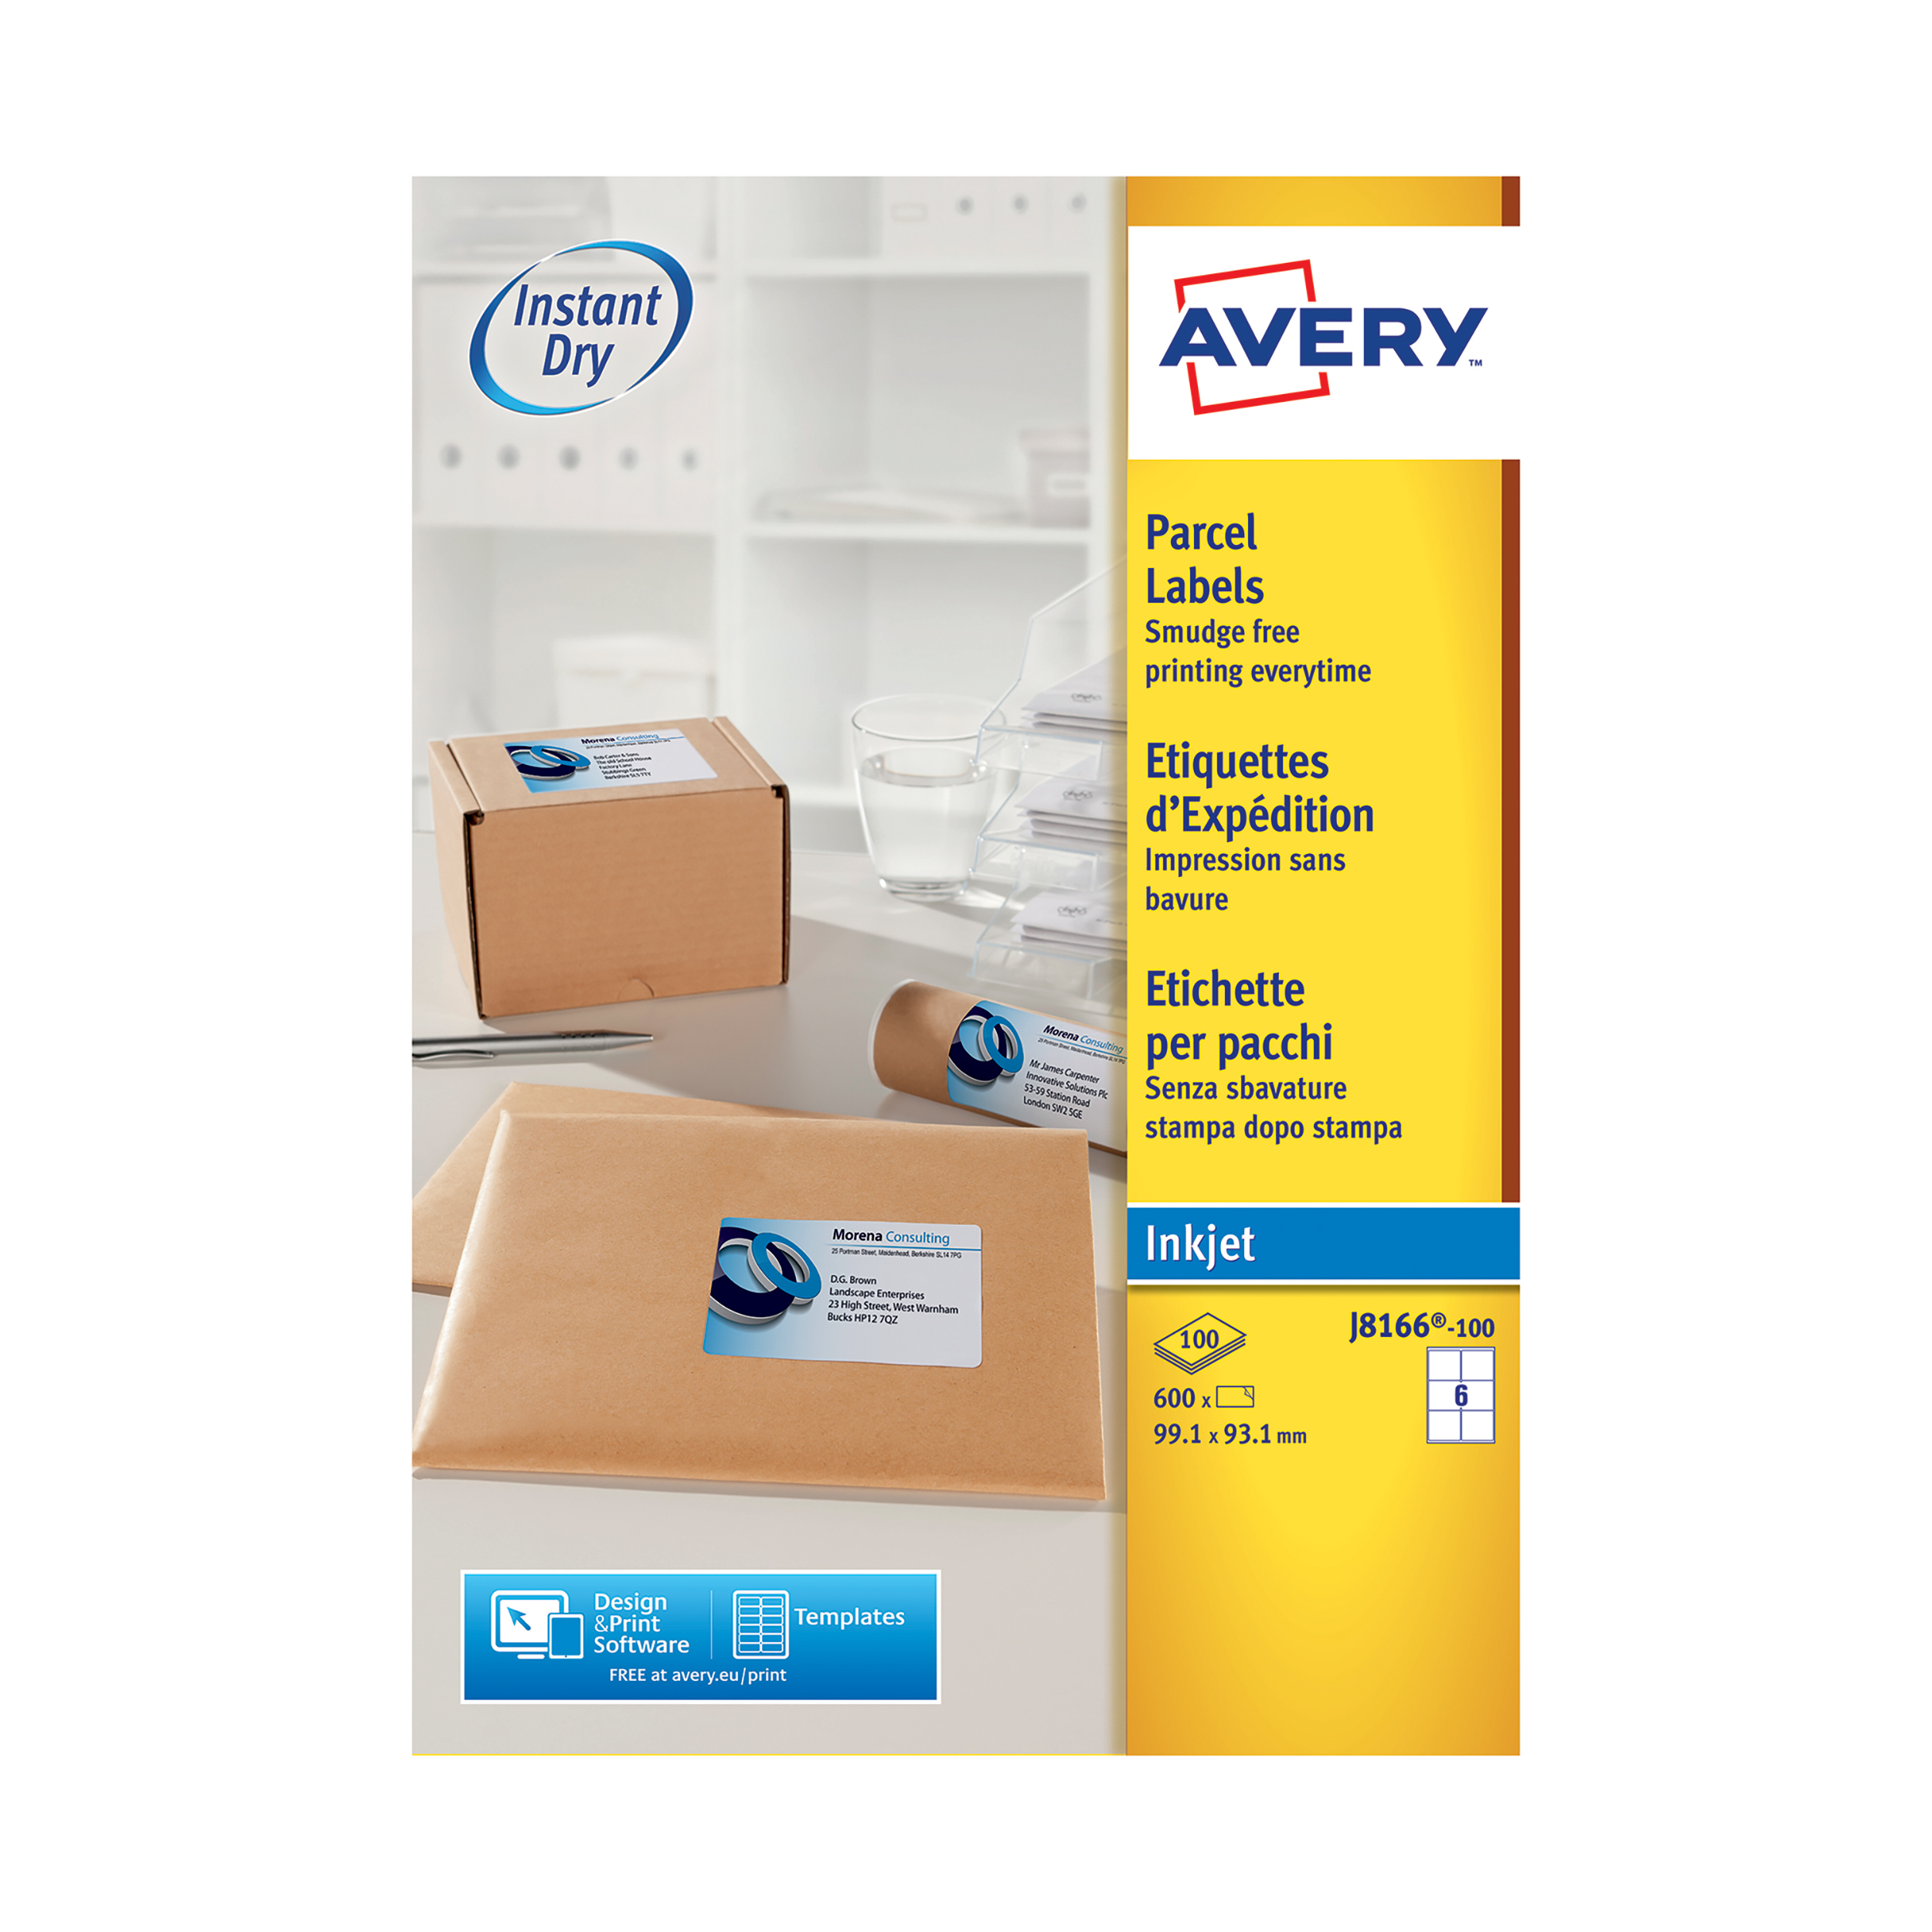 Avery Quick DRY Parcel Labels Inkjet 6 per Sheet 99.1x93.1mm White Ref J8166-100 600 Labels